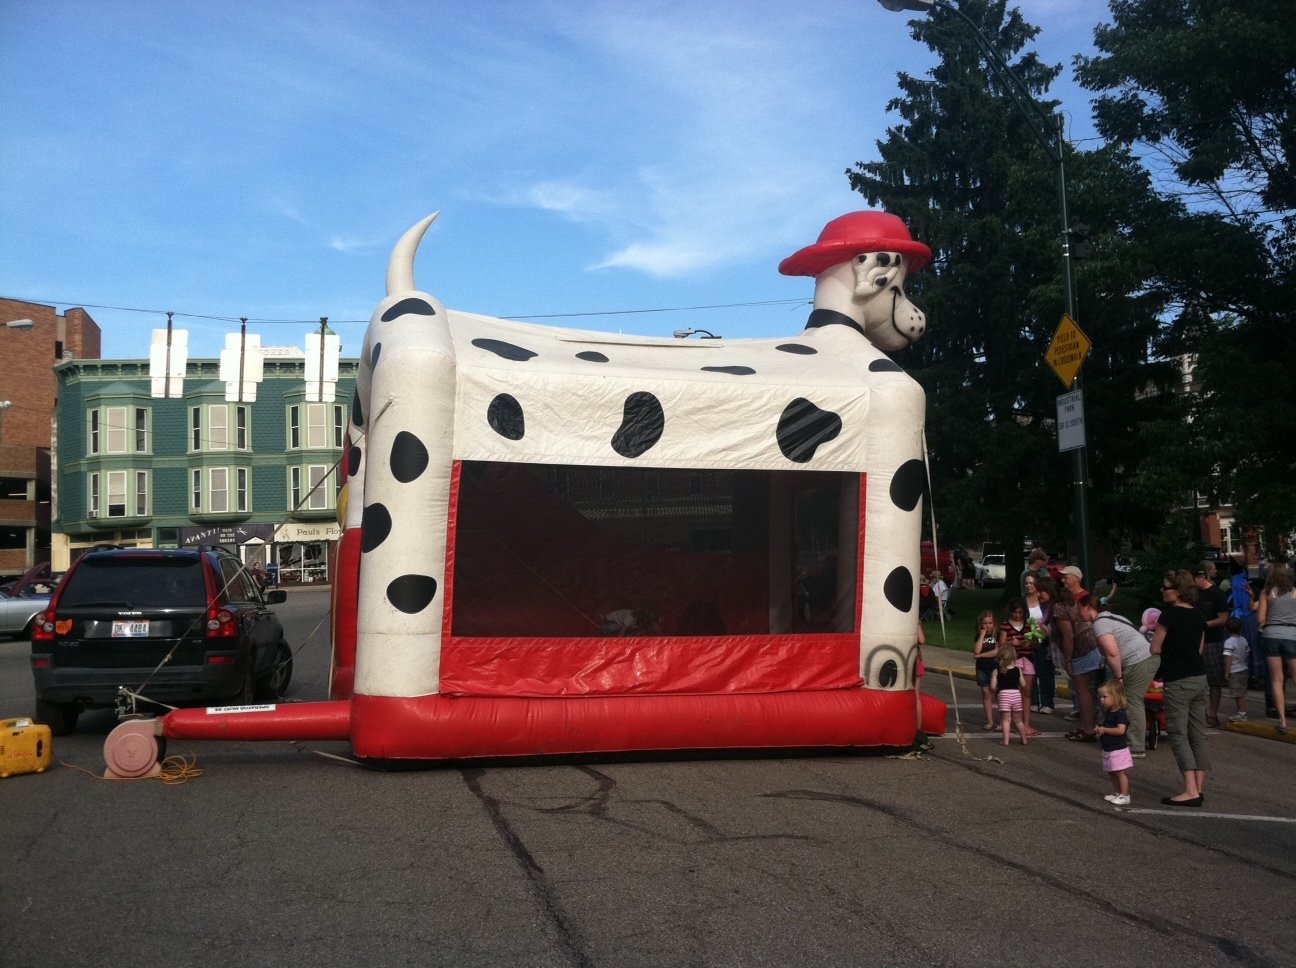 Mount Vernon Ohio First Friday Bounce House photo by Sam Miller